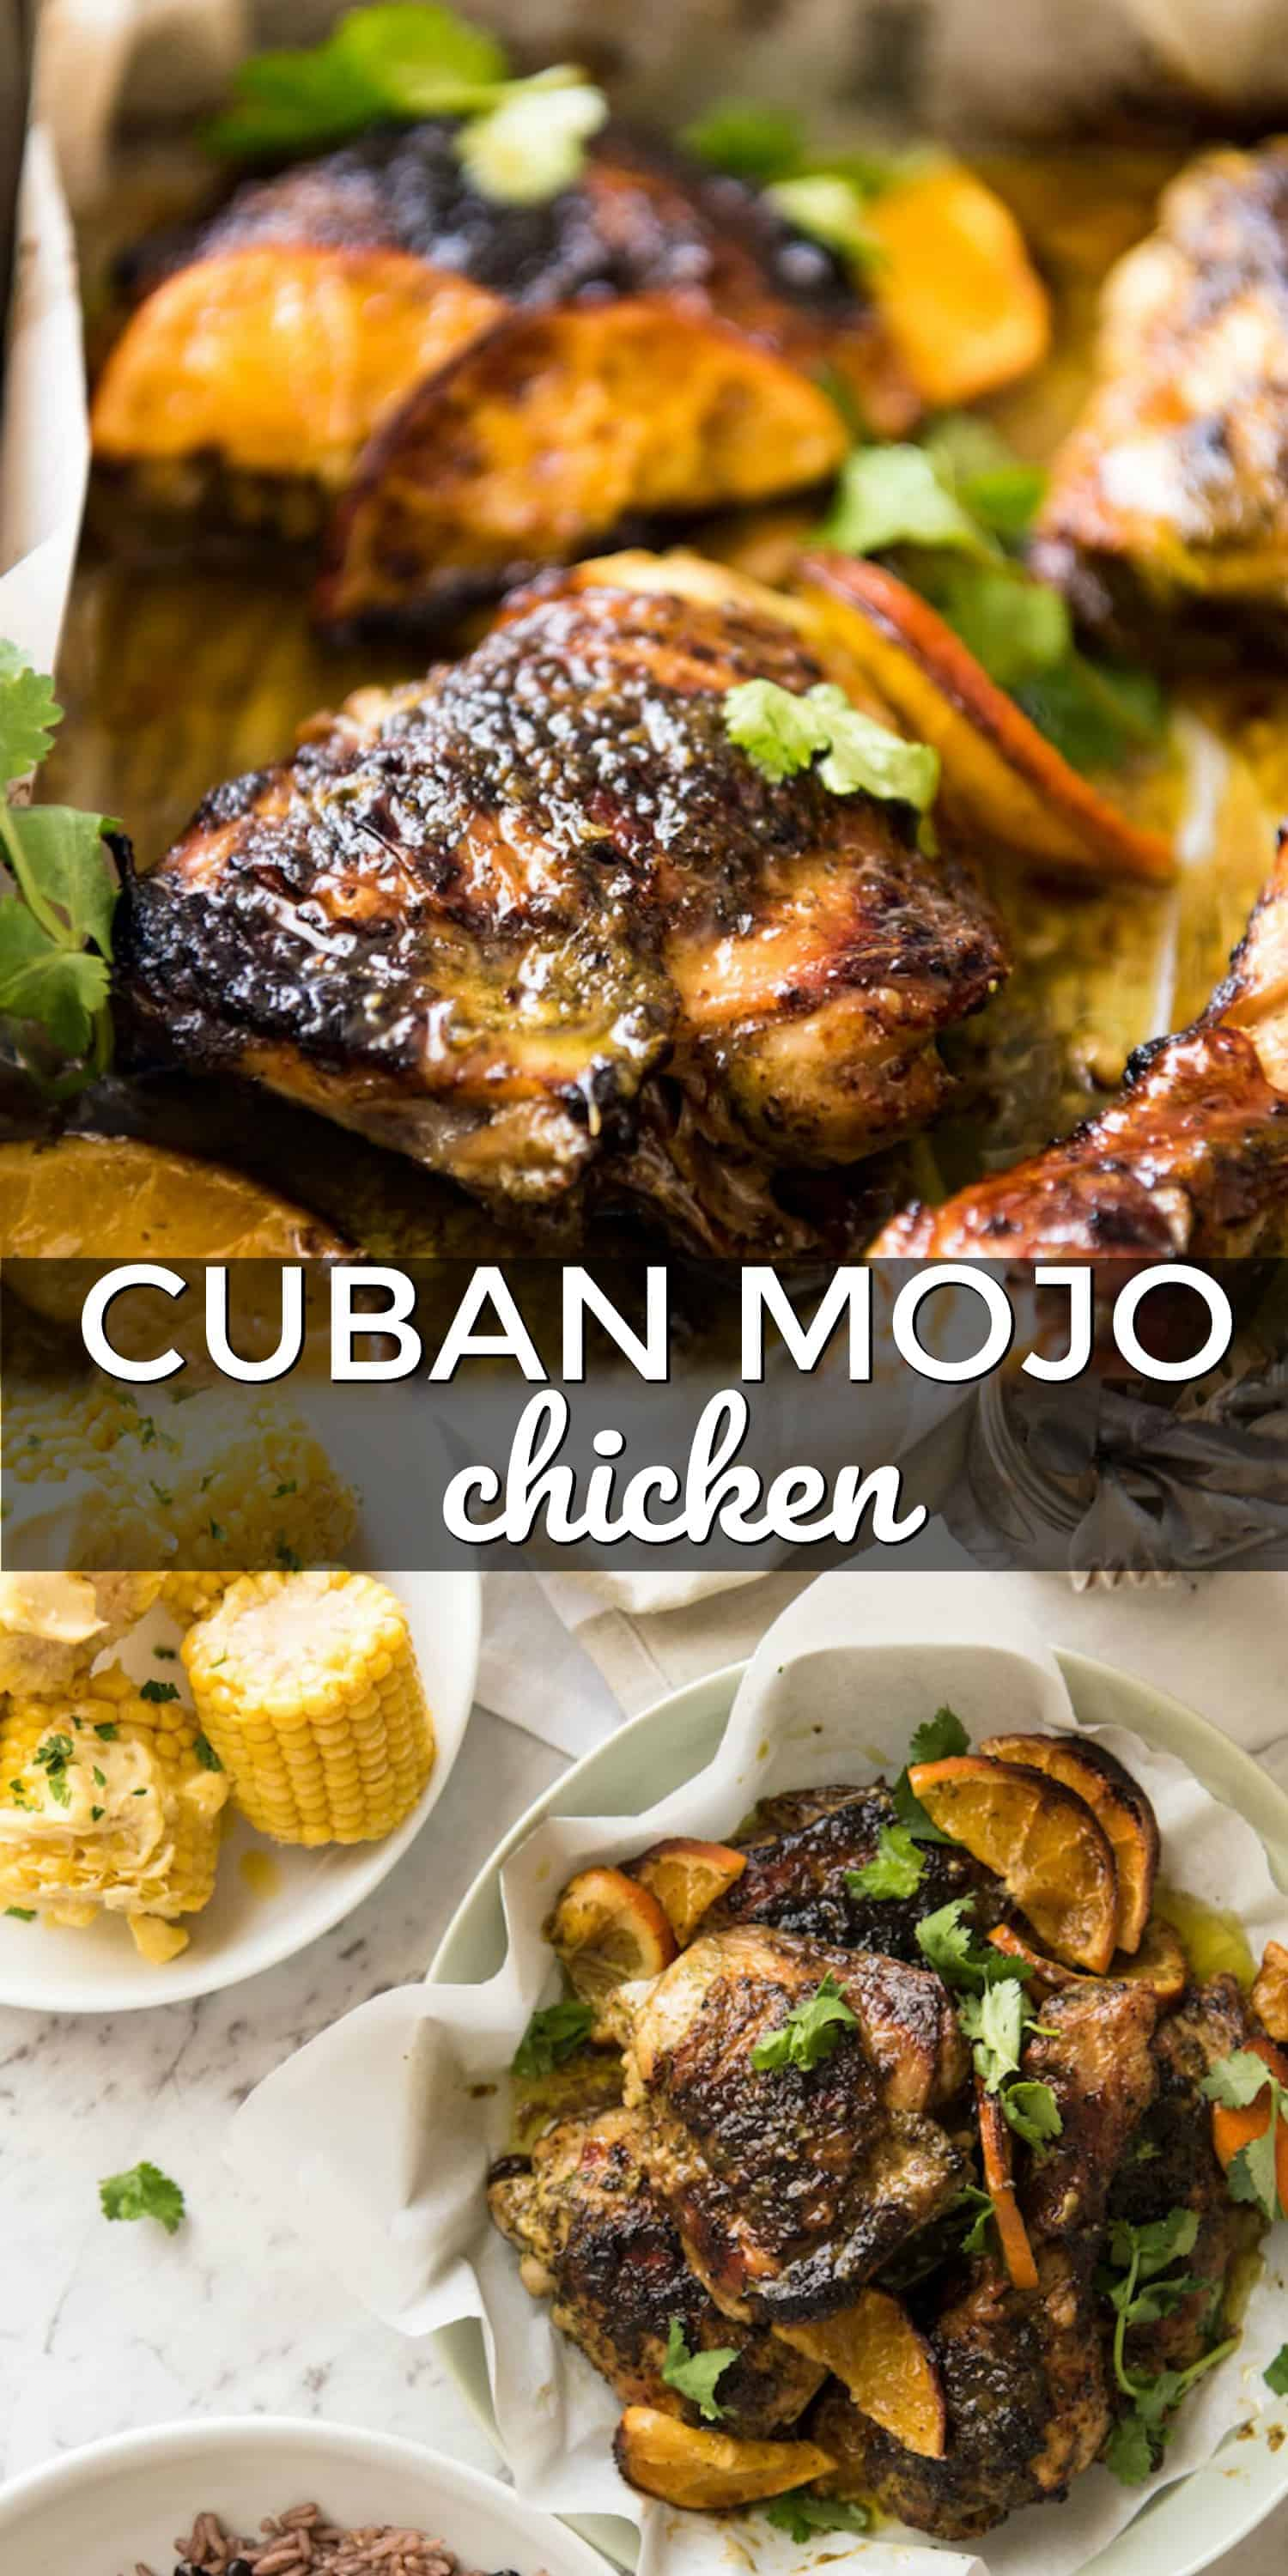 This Cuban Mojo Chicken has been marinated in a wicked Cuban Mojo marinade and roasted to juicy perfection. Try this zesty, garlicky Cuban chicken for dinner tonight! #spendwithpennies #chicken #maincourse #dinner #easyrecipe